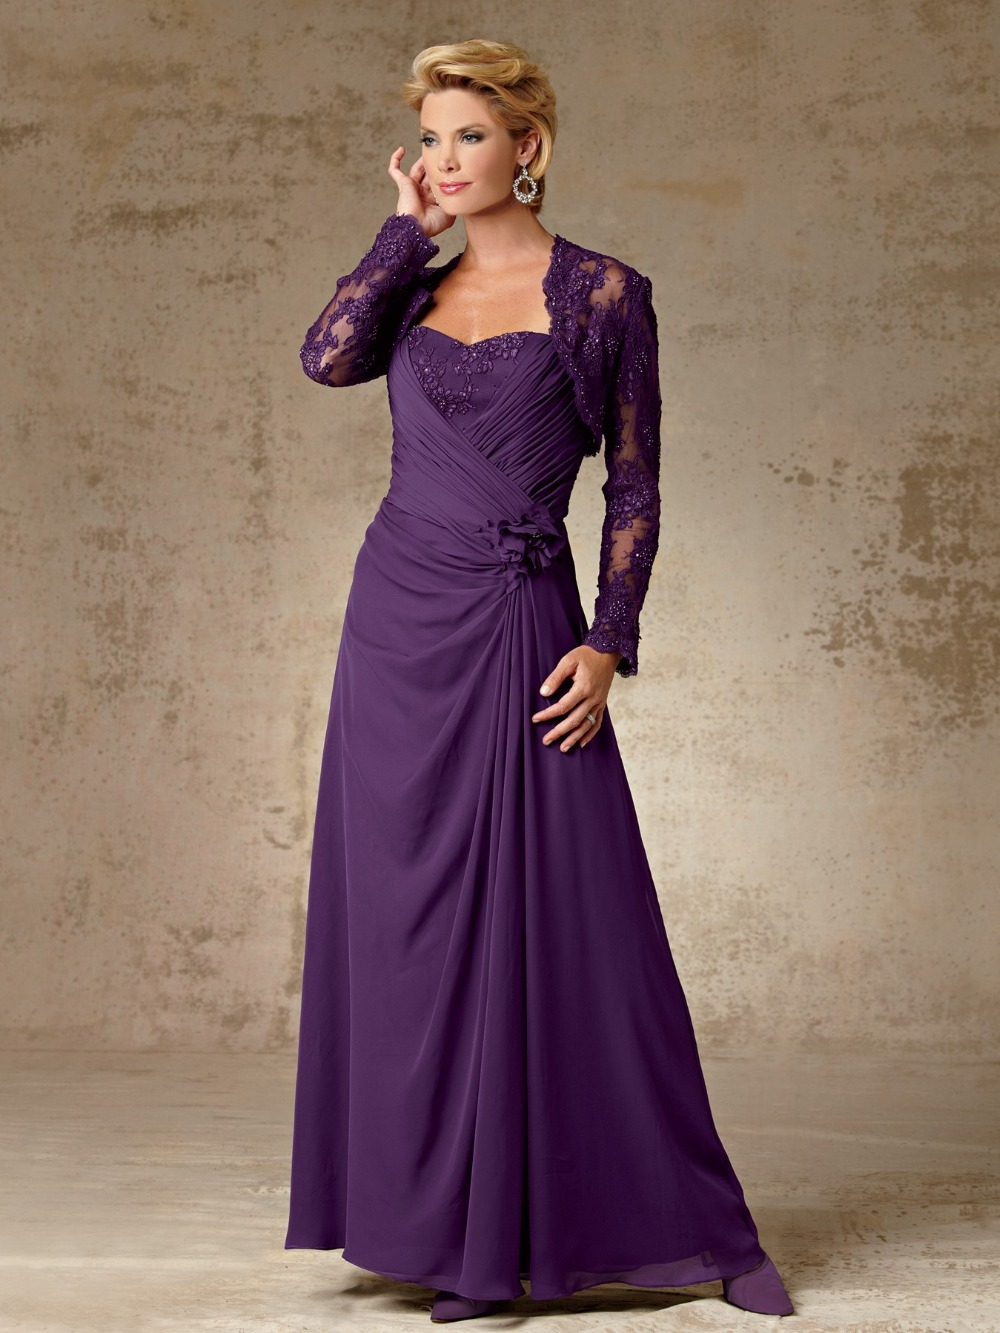 Elegant Long Chiffon Purple Mother Of The Bride Dresses With Lace